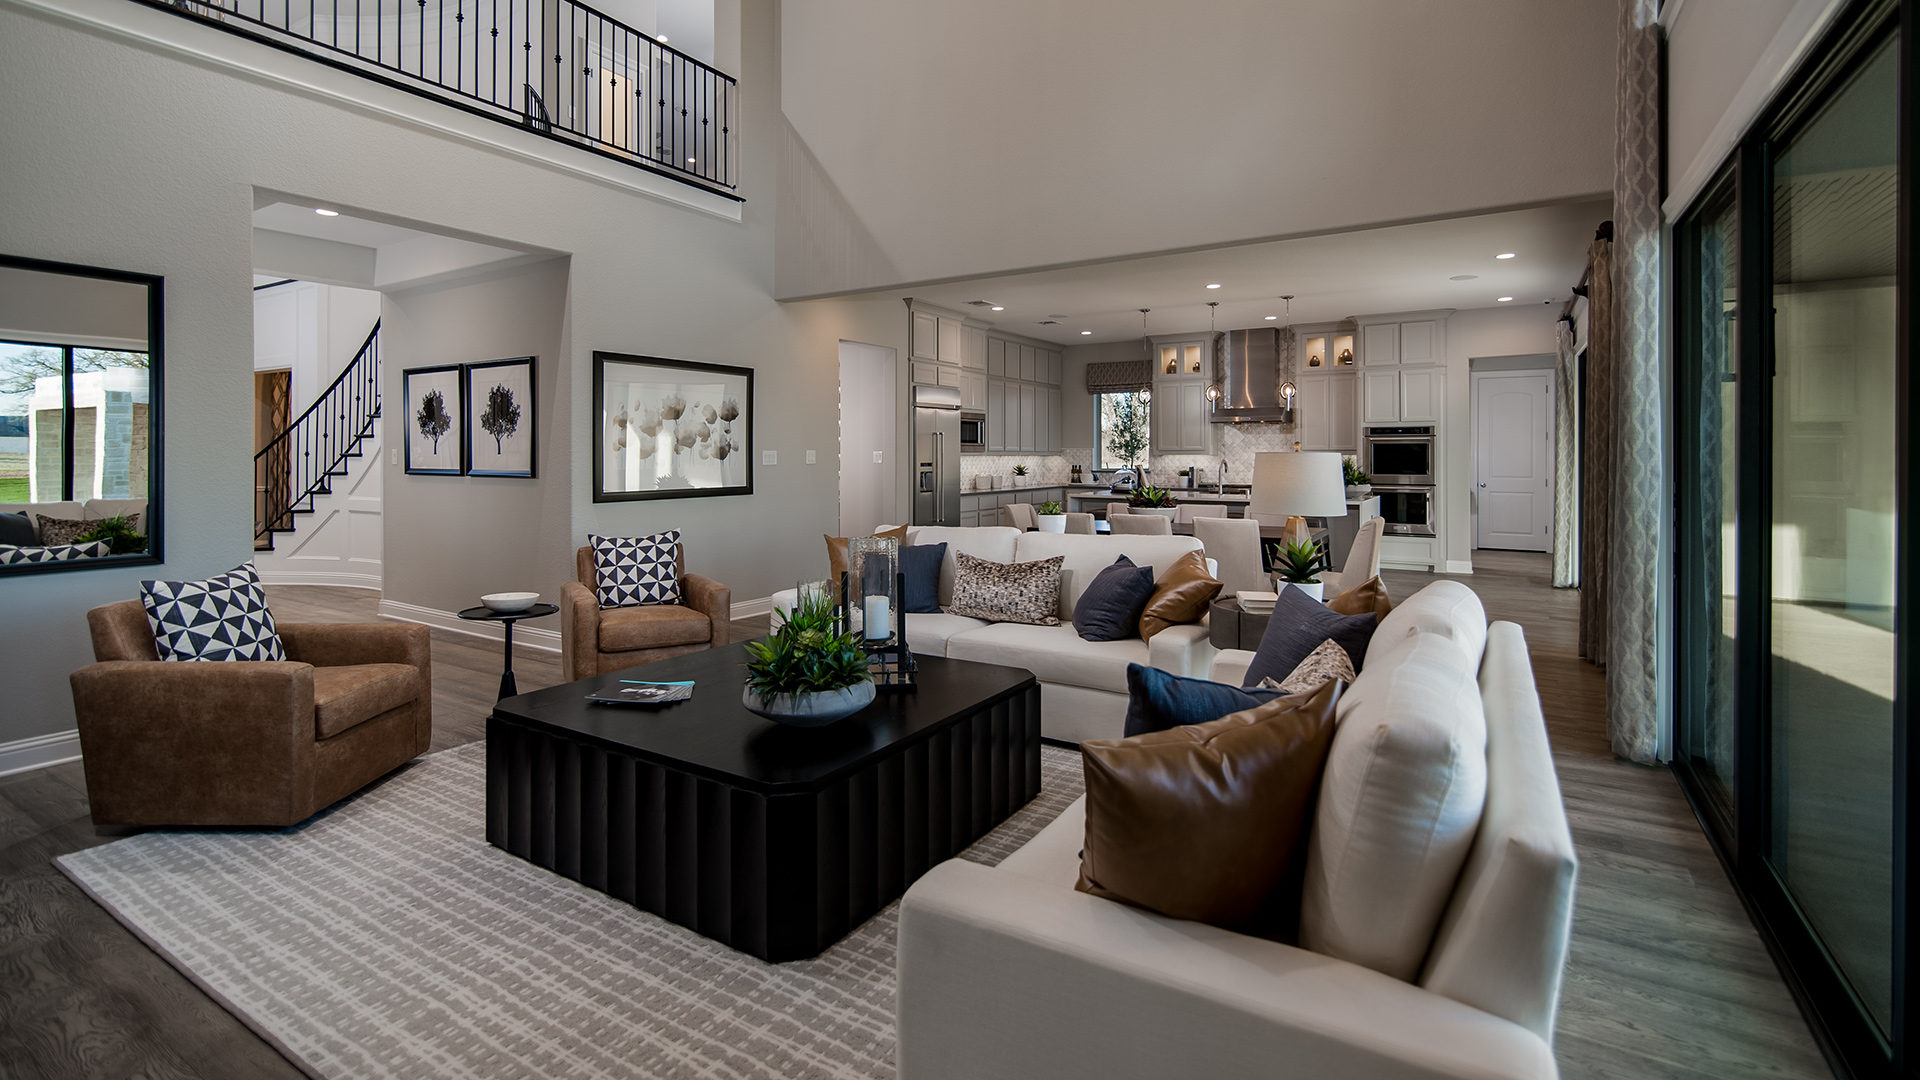 Living Room Vs Great Room Town Lake At Flower Mound The Monte Verde Home Design